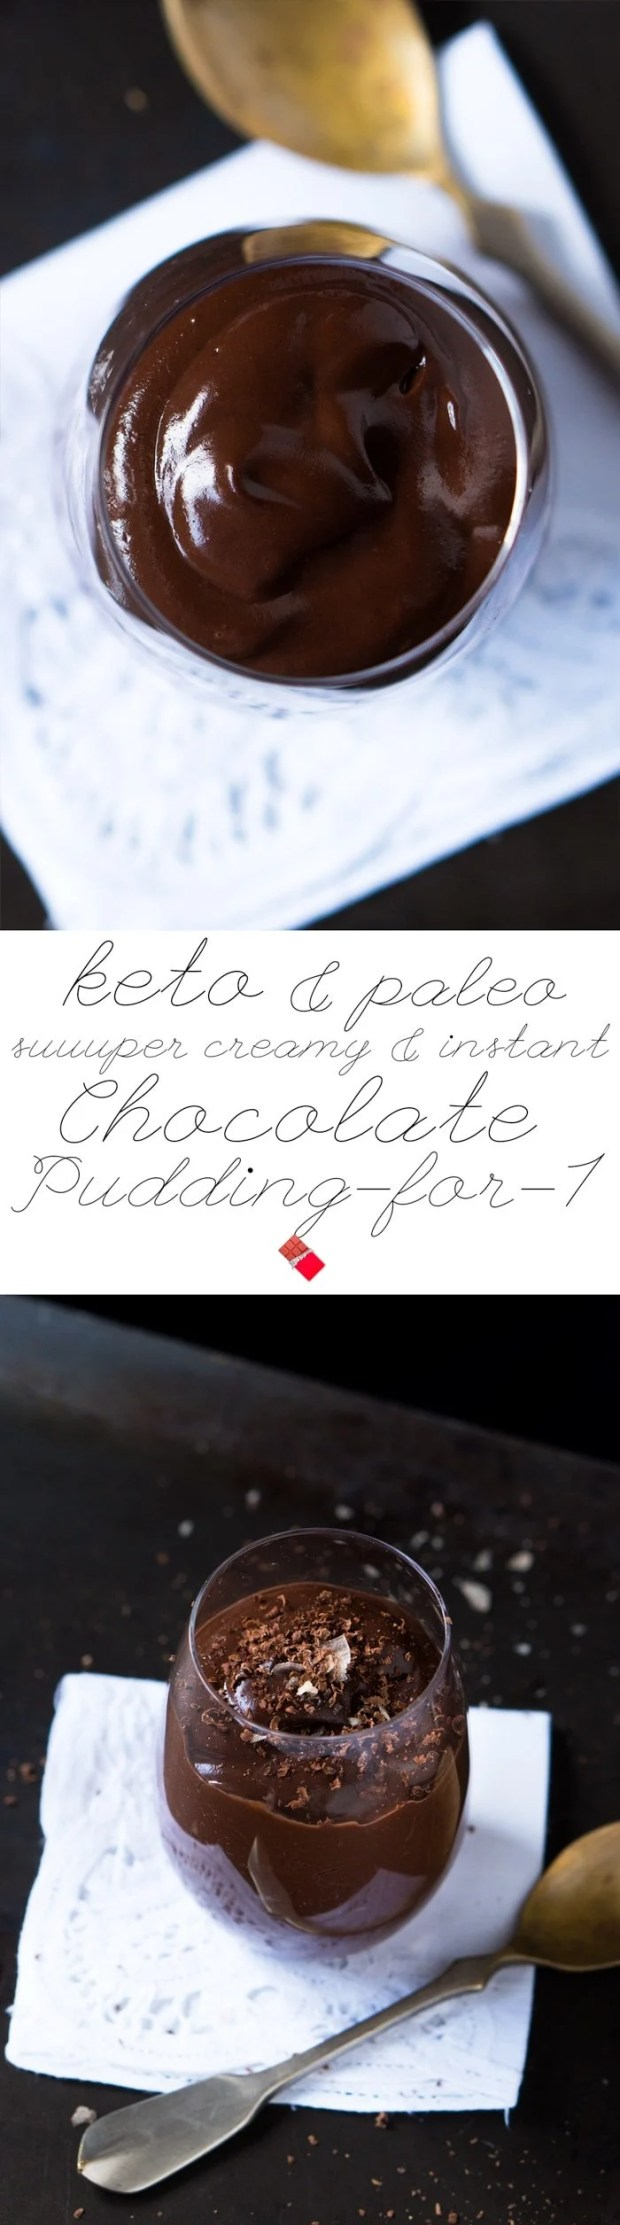 Paleo & Keto Chocolate Pudding-For-1 🍫 suuuper creamy & instant #ketochocolate #paleochocolate #ketodessert